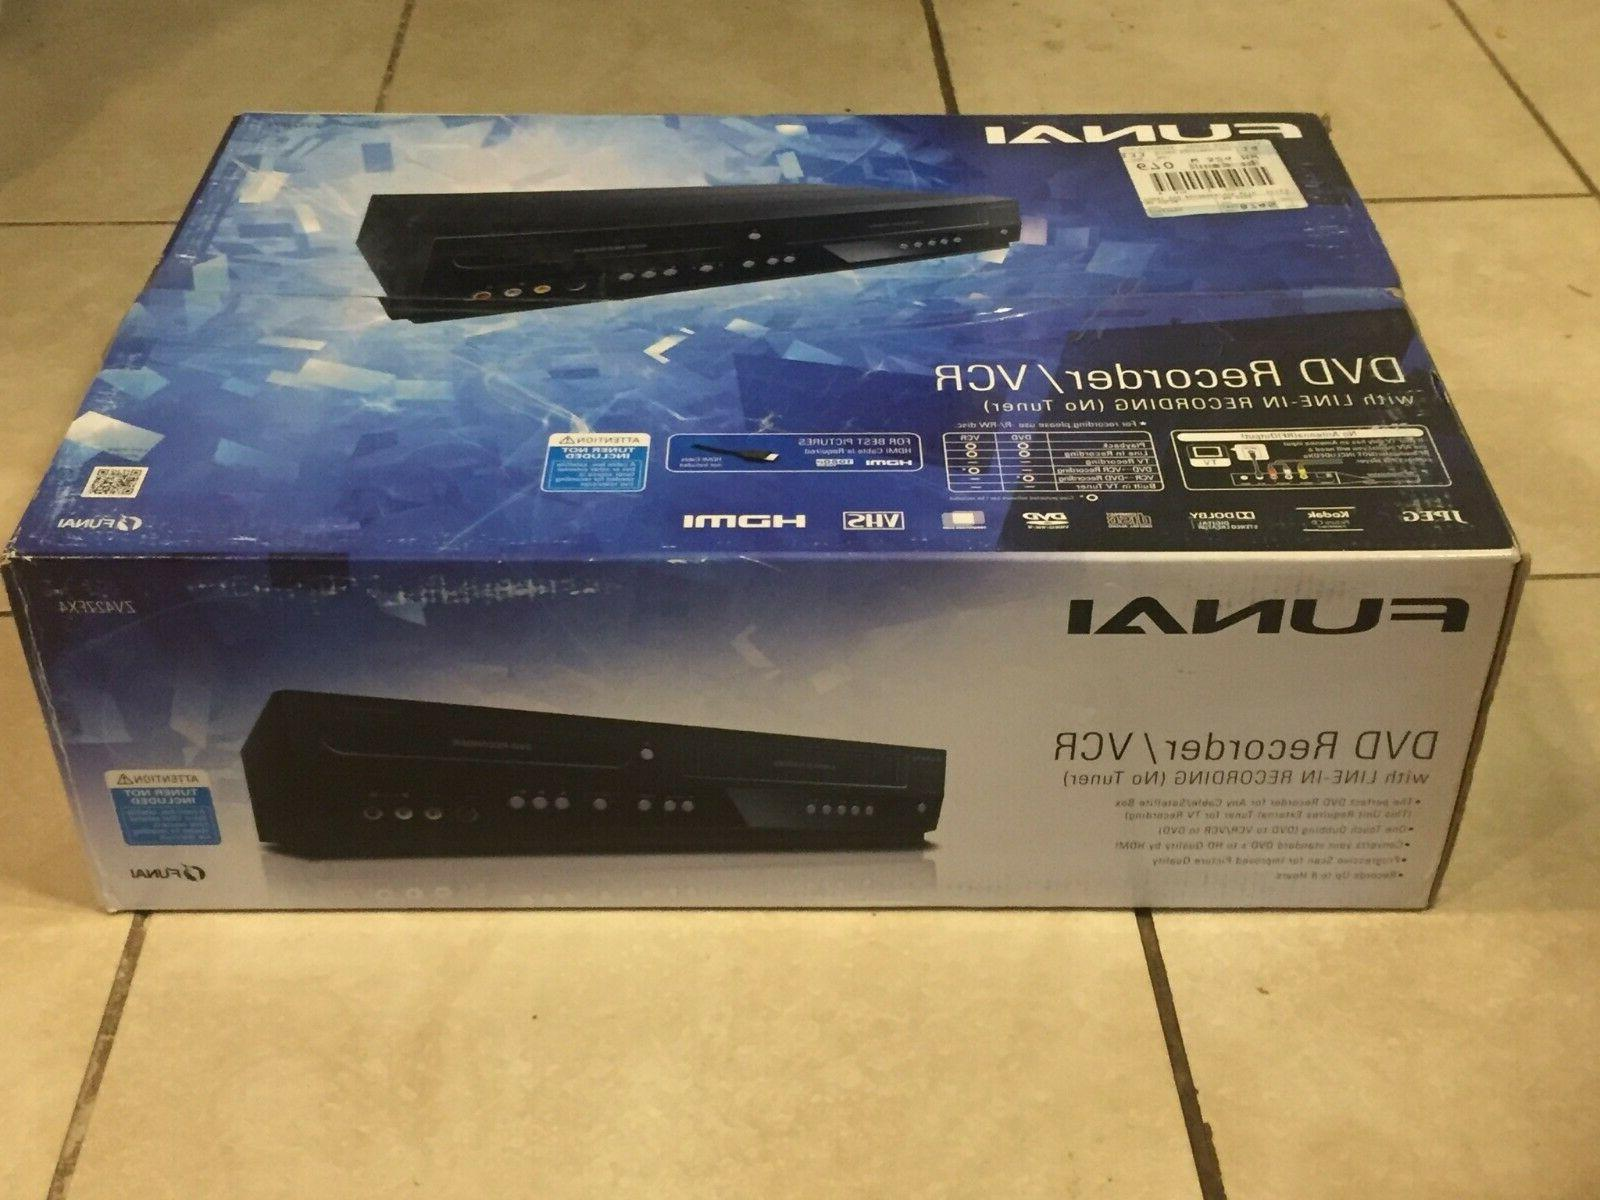 zv427fx4 new vcr and dvd recorder player